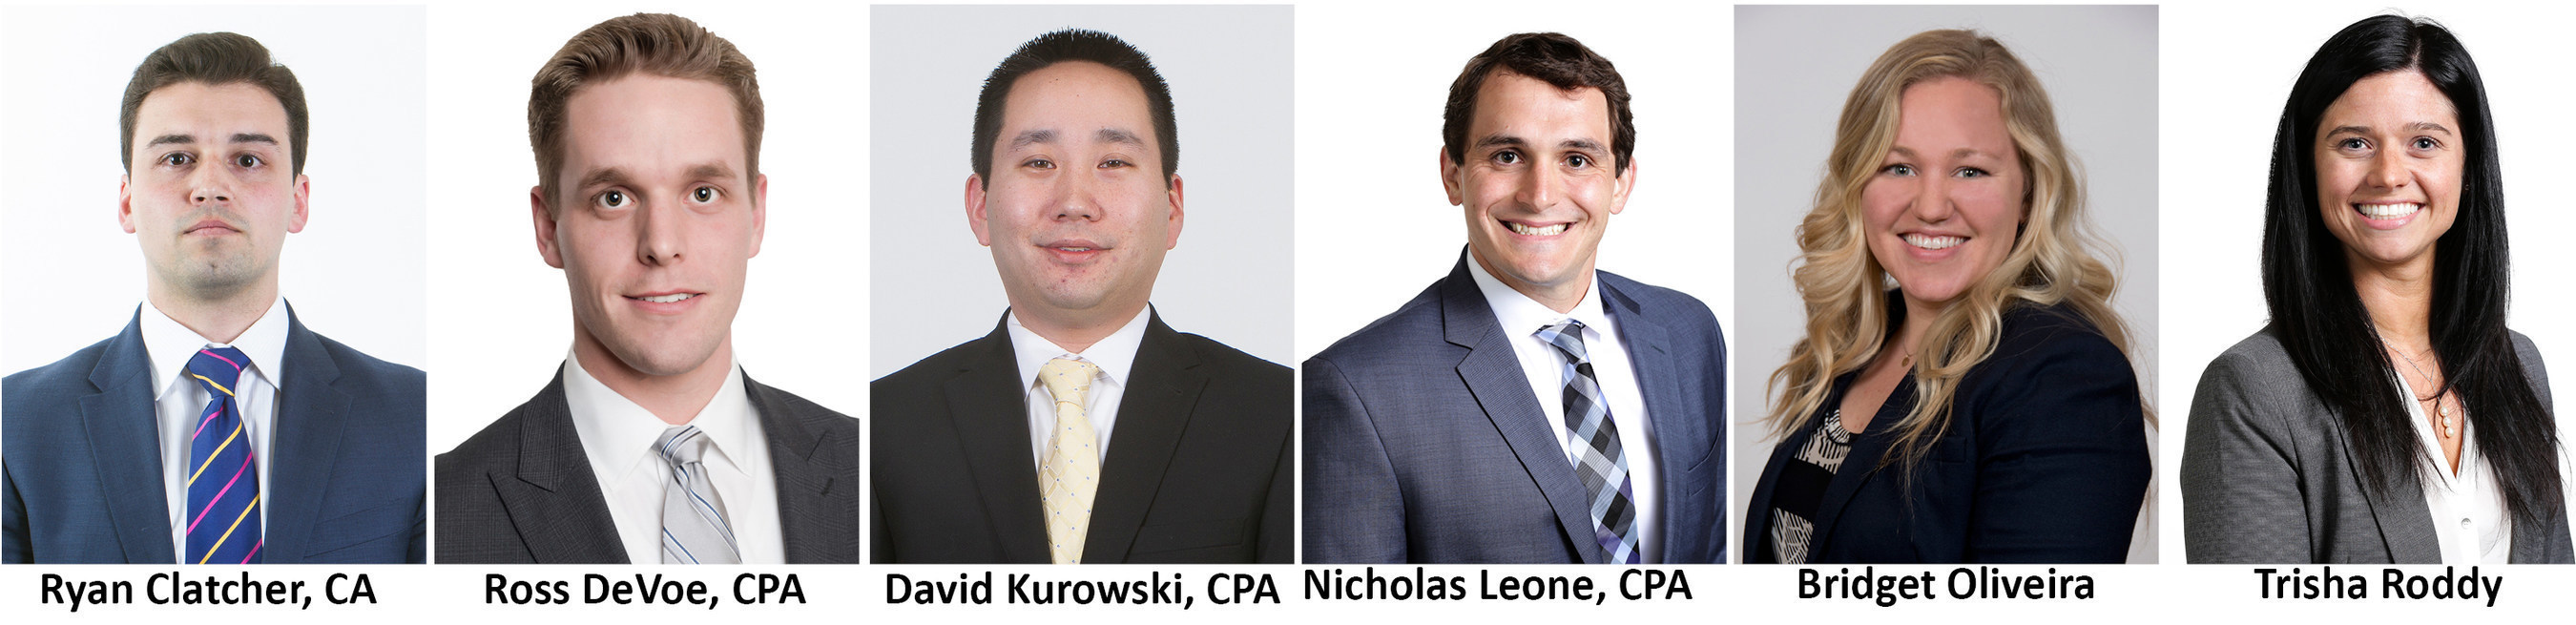 The Siegfried Group, LLP Welcomes New Team Leaders